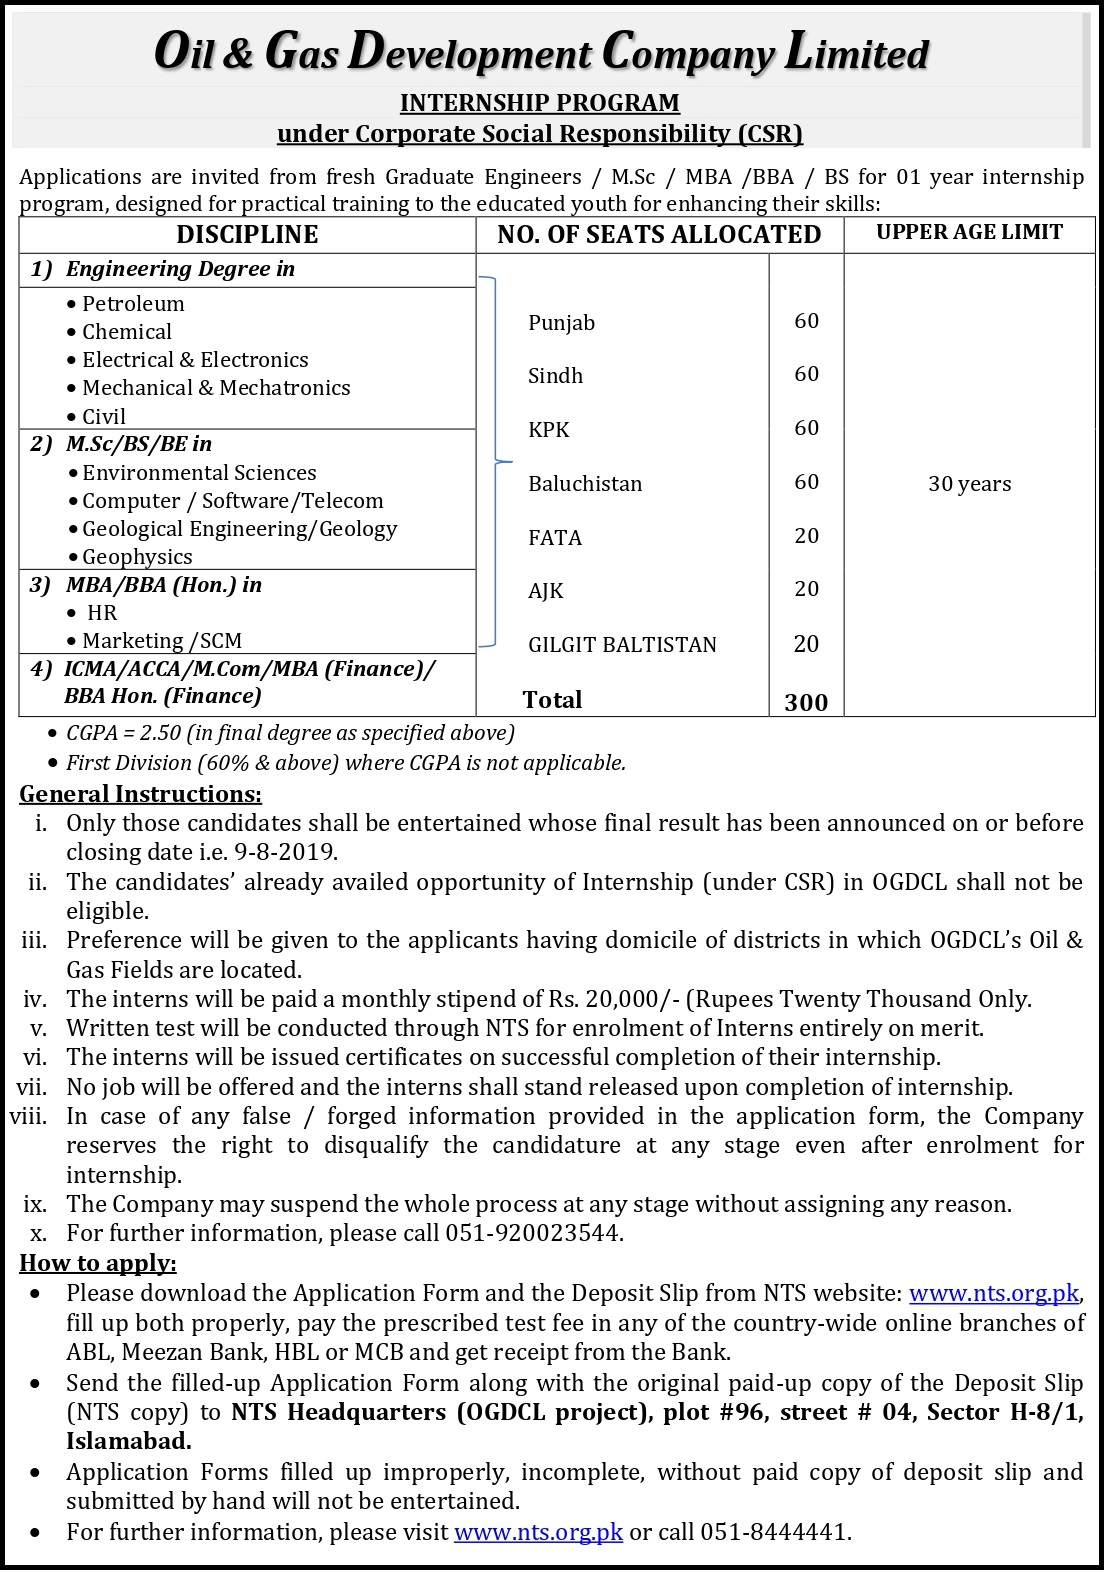 Oil And Gas Development Company Limited Internship Program 2019 NTS Test Download Application Form